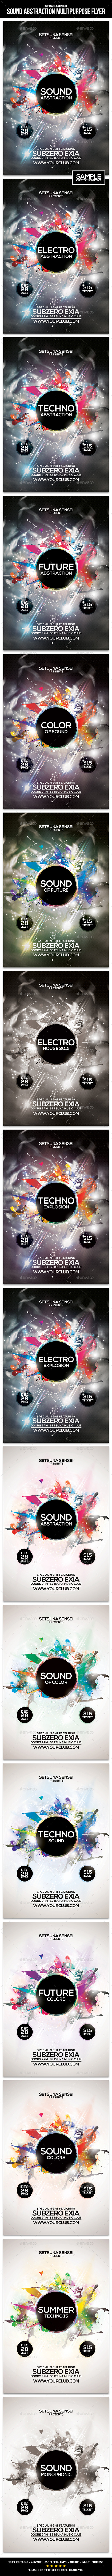 GraphicRiver Sound Abstraction Multipurpose Flyer 9570069